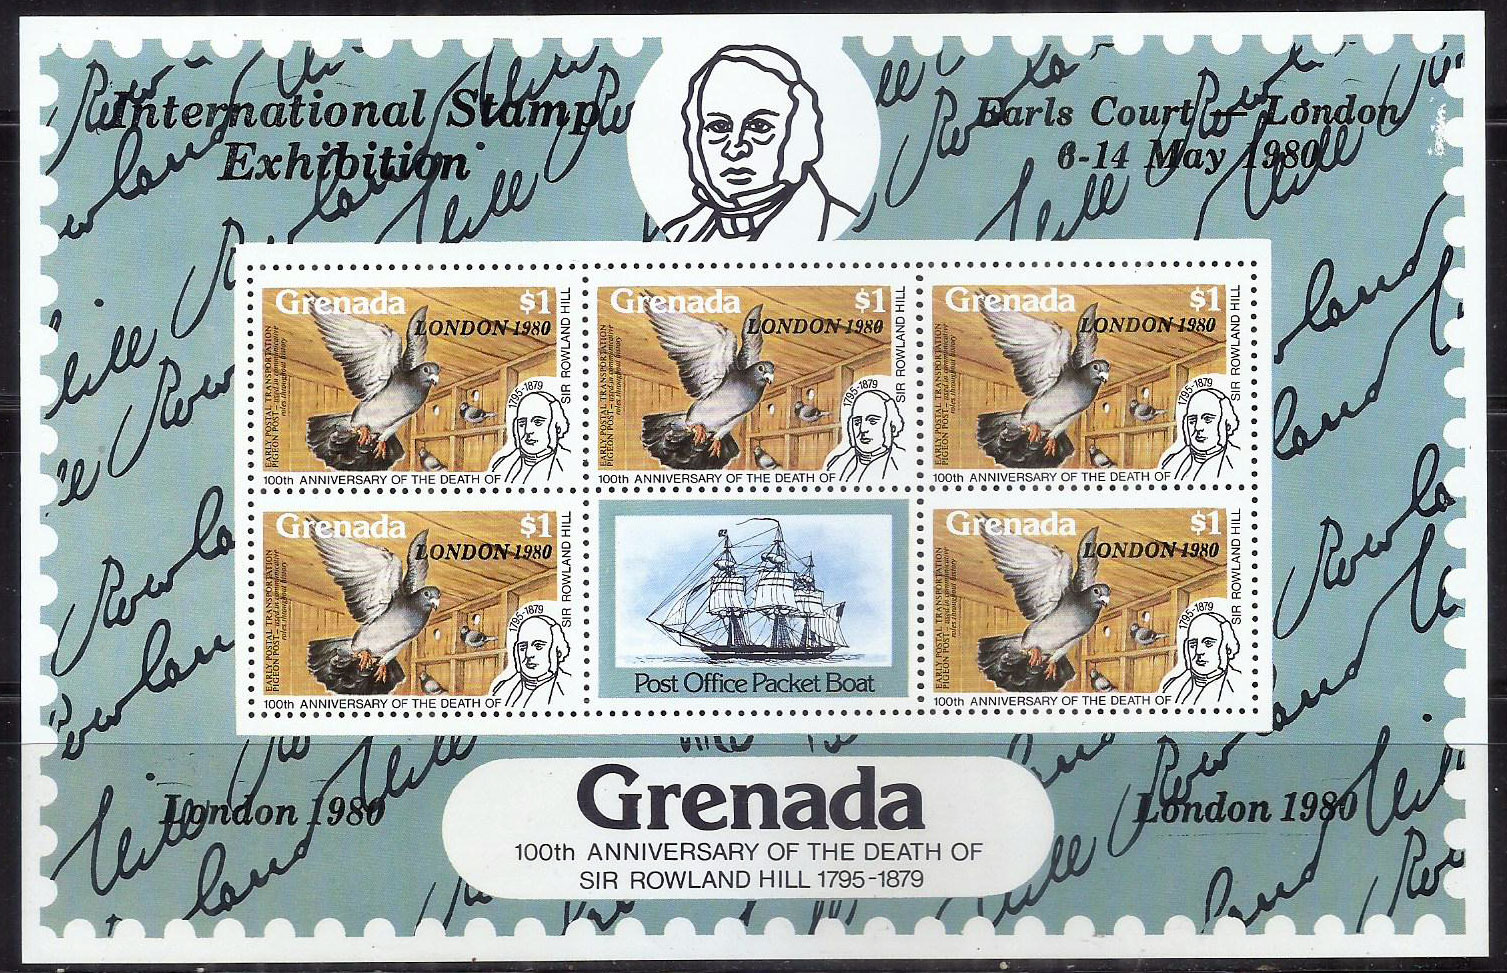 Grenada - MH (Hinged) Sheet - 100th Anniv. of Death of Rowland Hill - Pigeon (P-020/F)